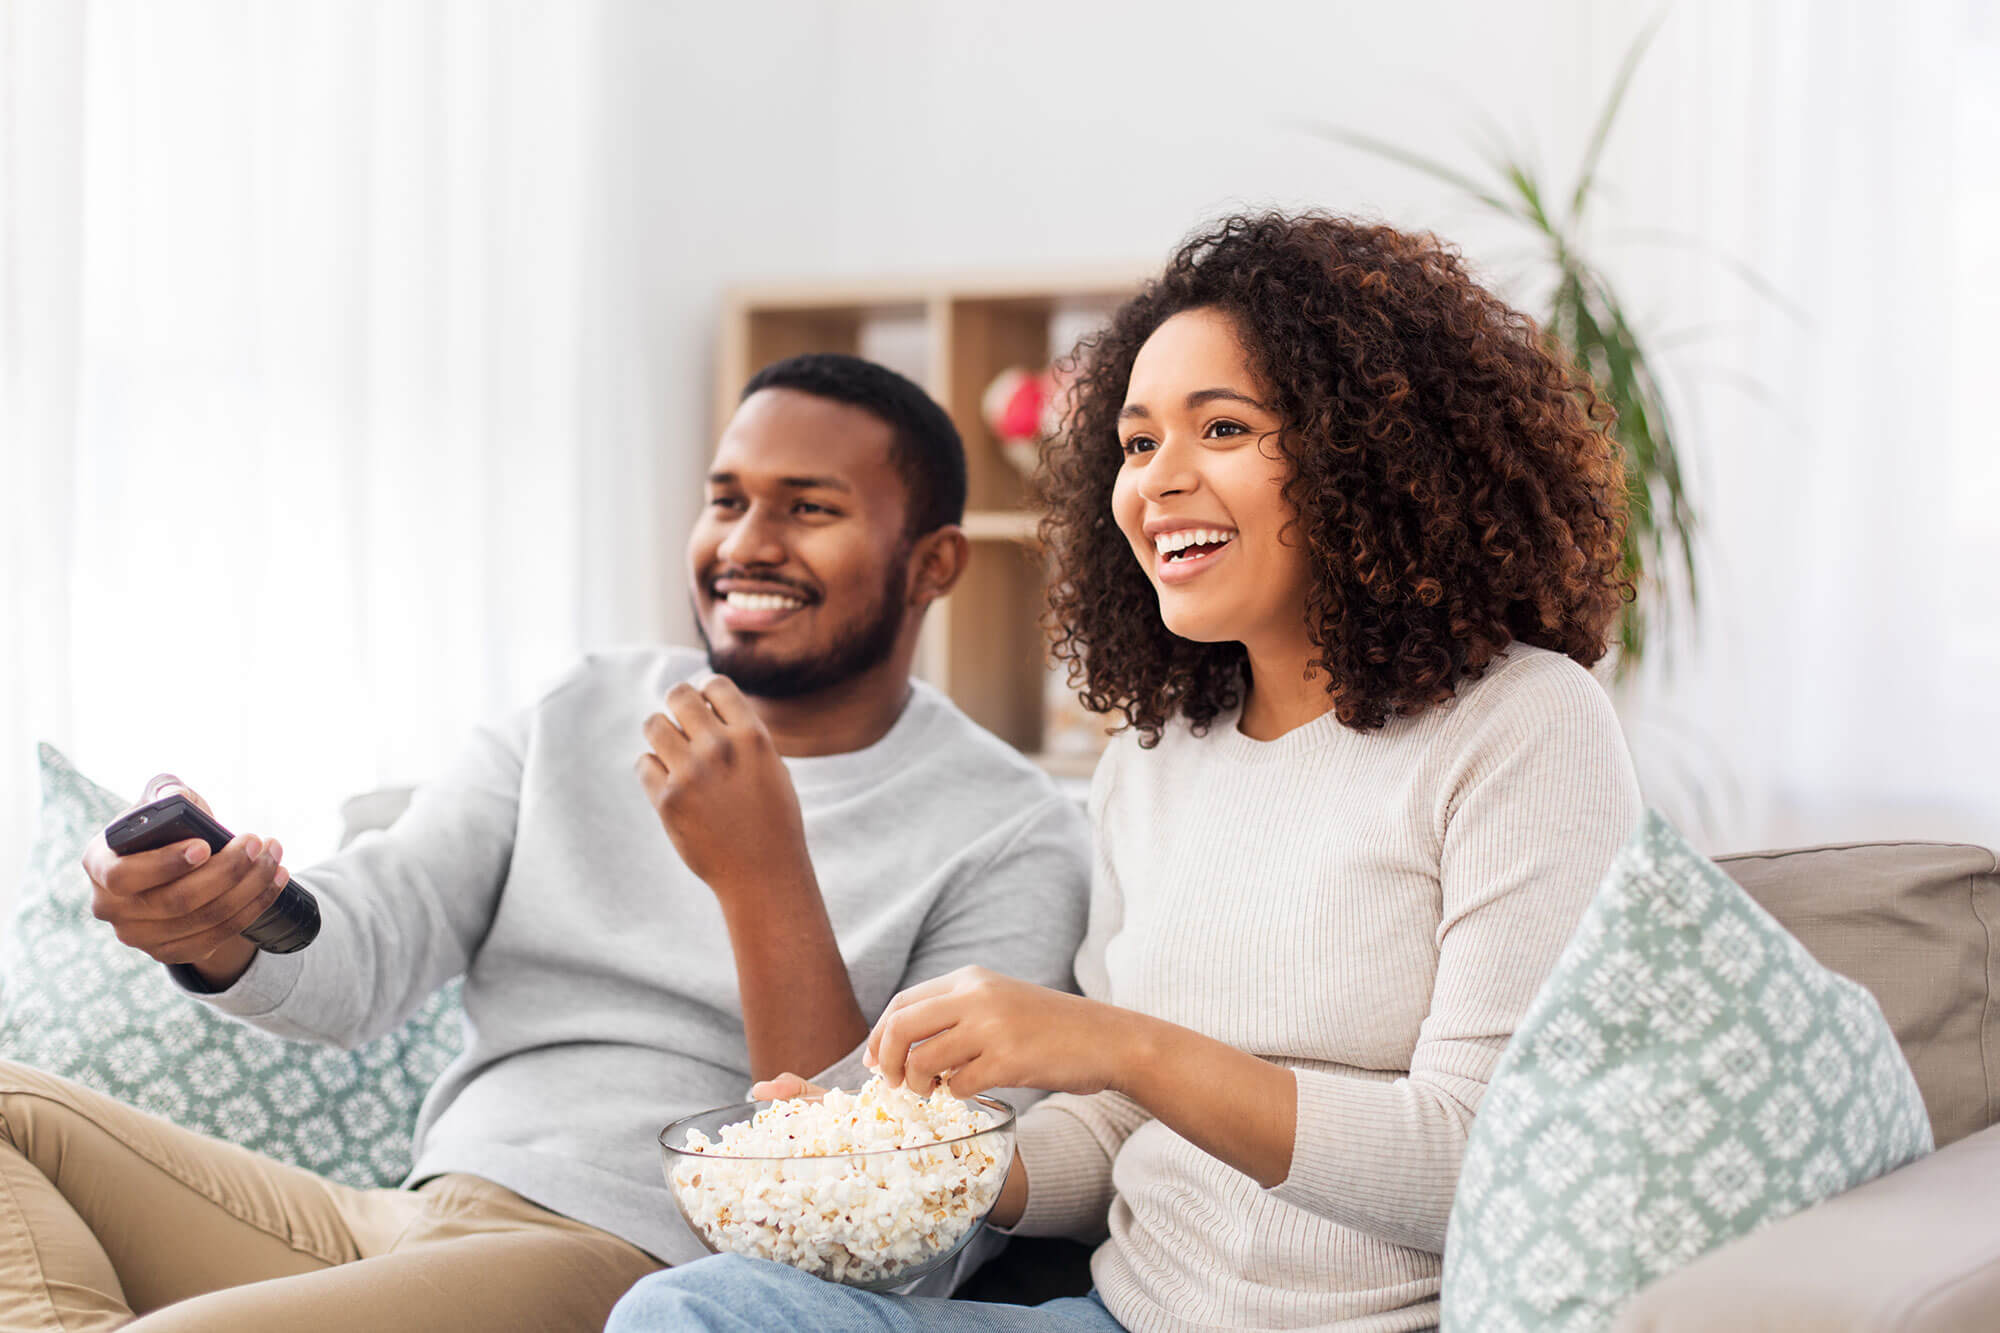 Photo of Man and Woman sitting on Couch with Bowl of Popcorn